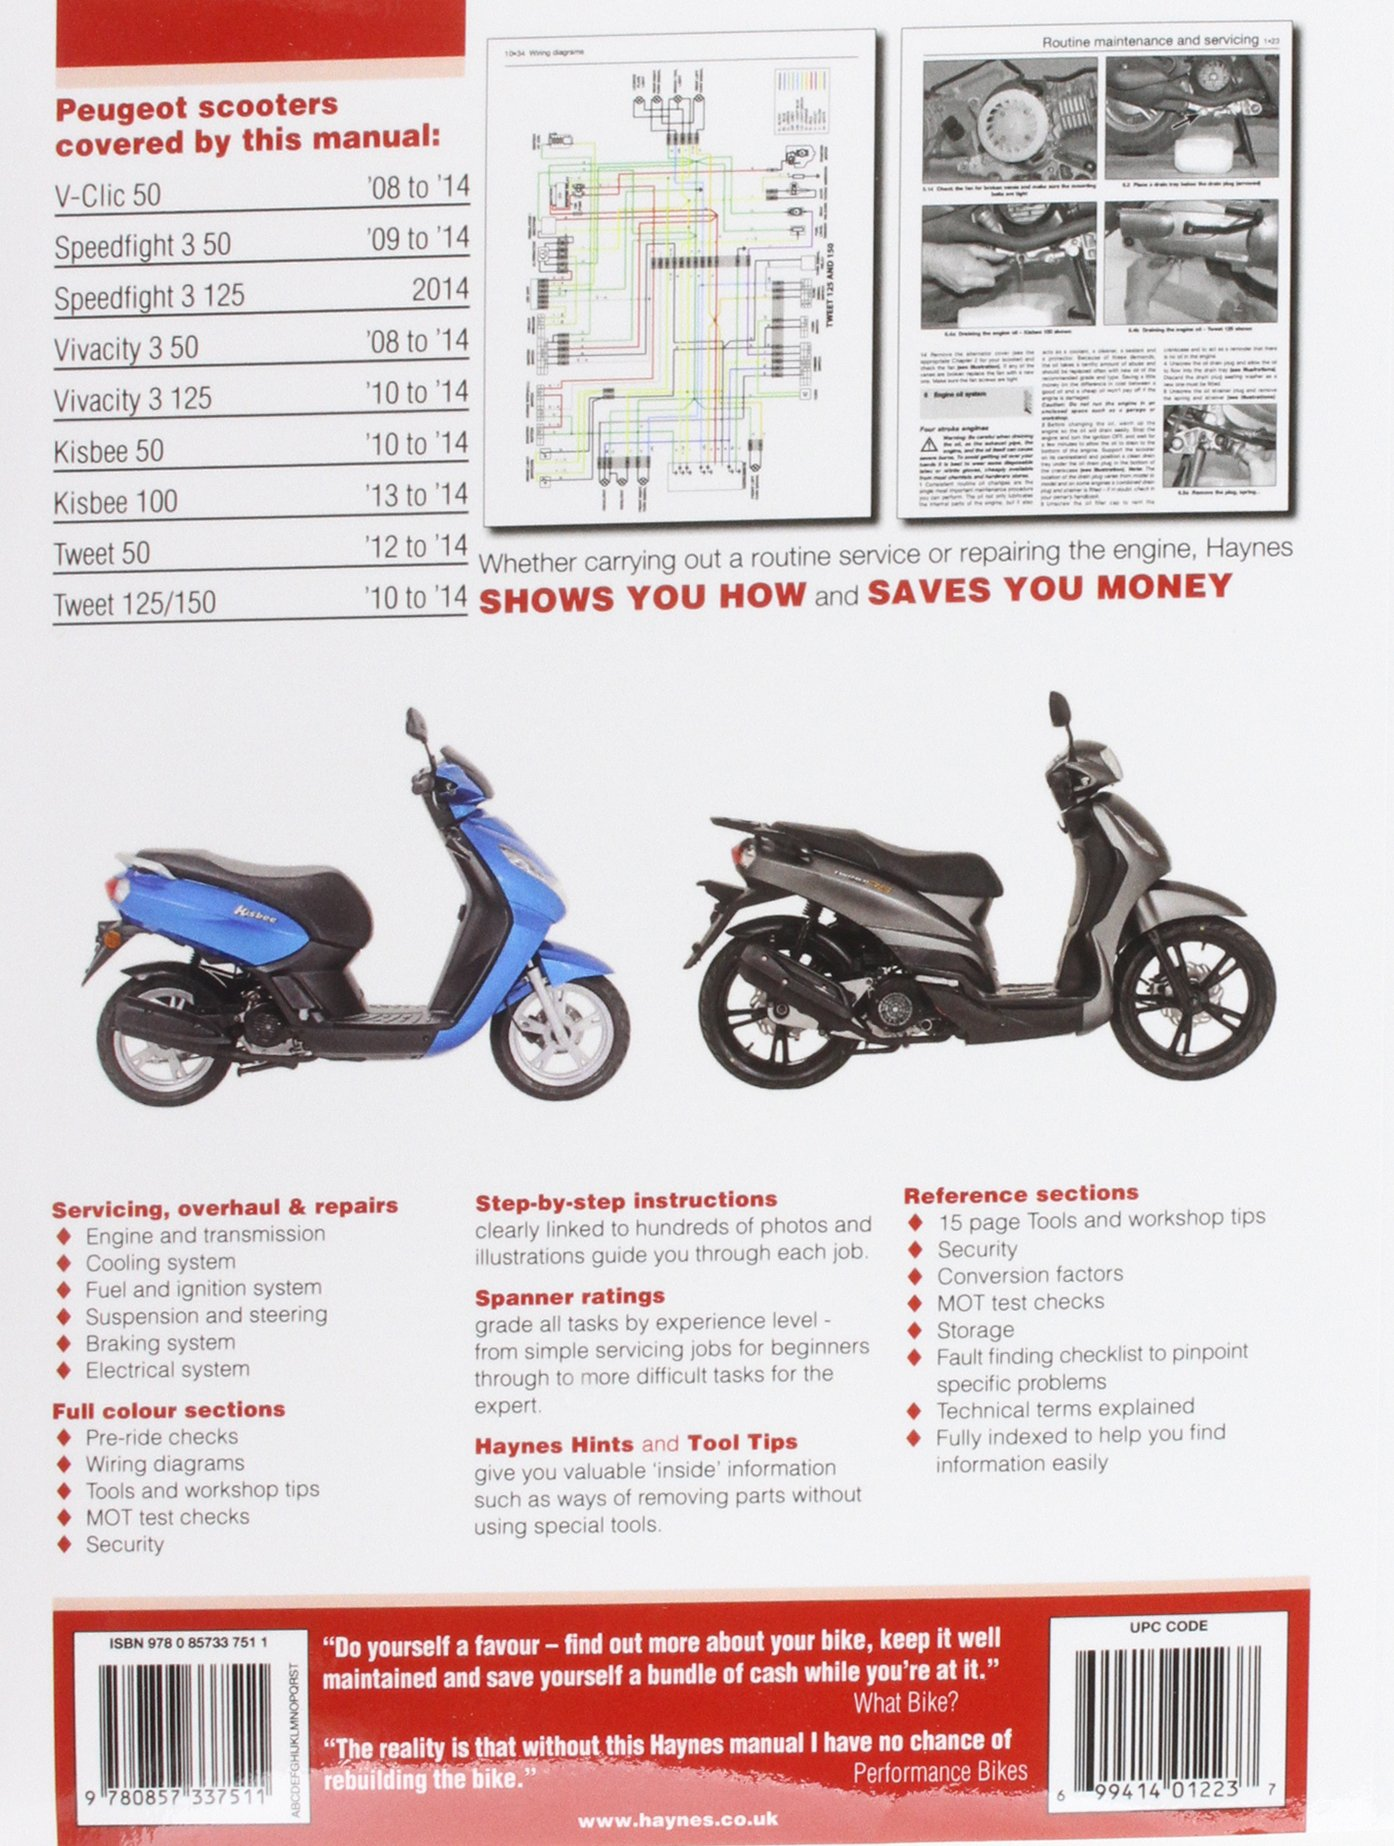 Buy Peugeot V-Clic, Speedfight 3, Vivacity 3, Kisbee & Tweet (08 To 14)  (Haynes Service & Repair Manual) Book Online at Low Prices in India |  Peugeot V-Clic ...